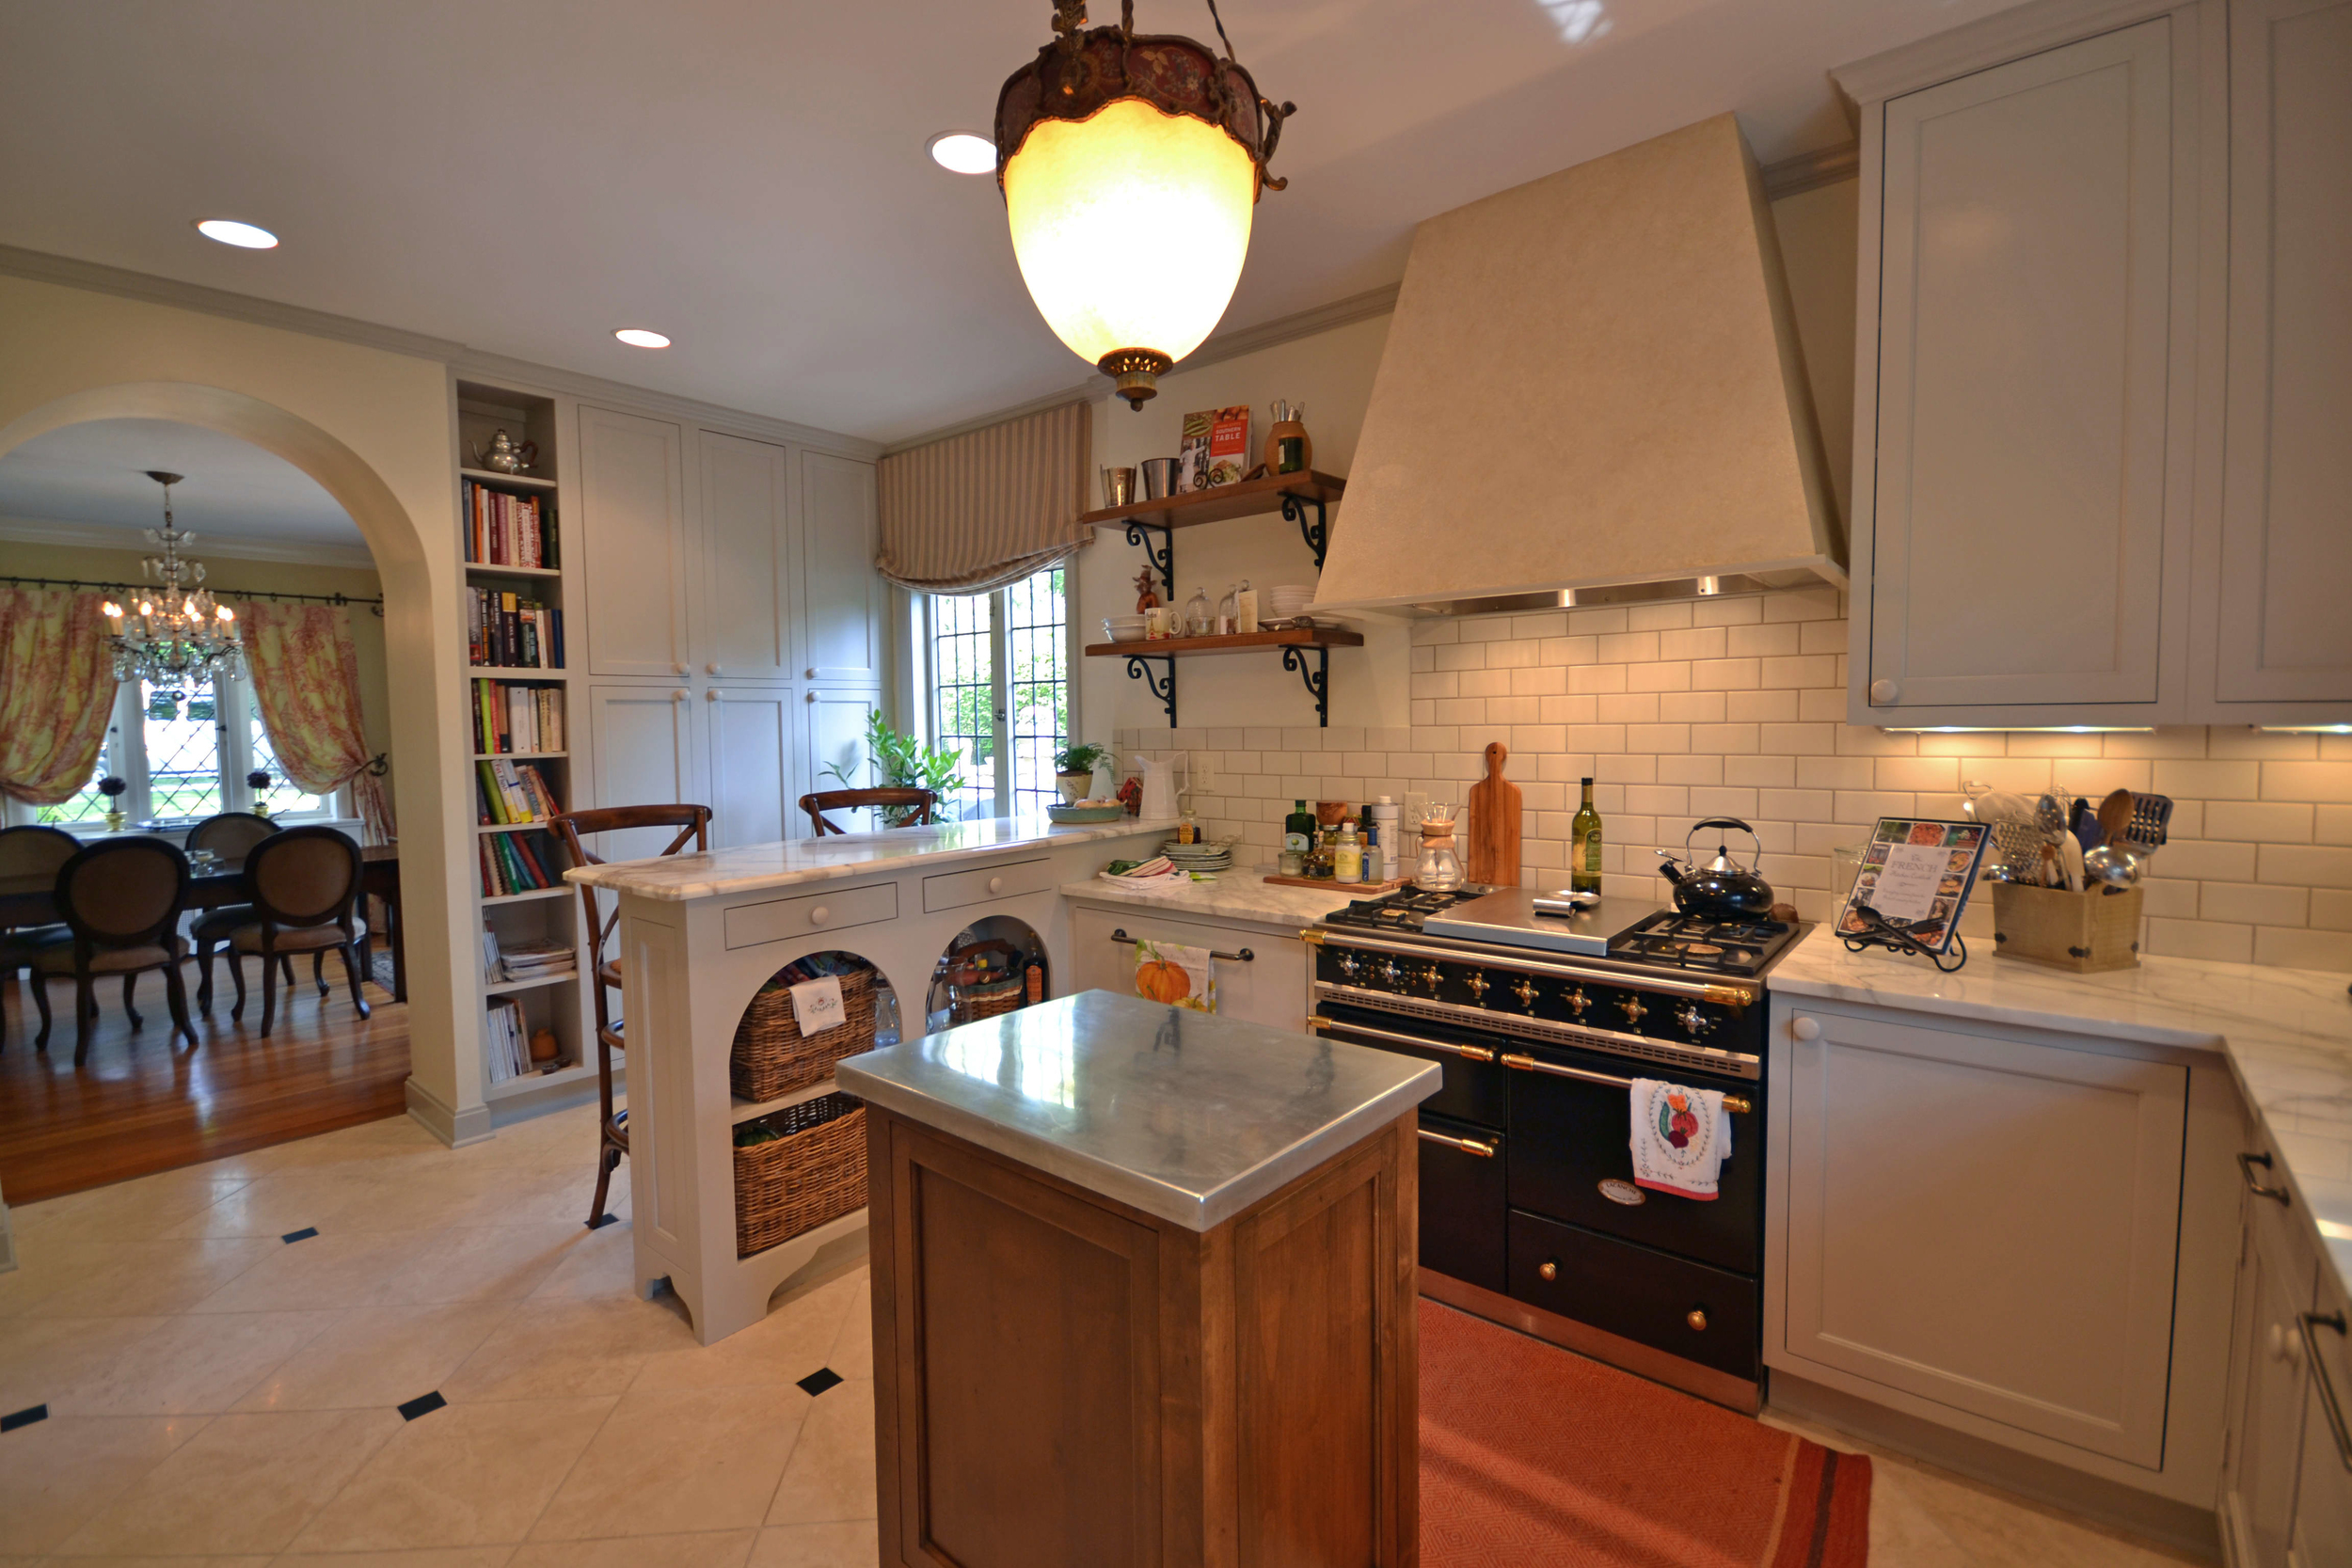 Amongst many of our favorite things in this DIGS' renovated kitchen are the arched basket niches under the peninsula and the La Coucet oven rage imported from France and installed (much to the chagrin of our installer's back muscles) for this gourmet client.